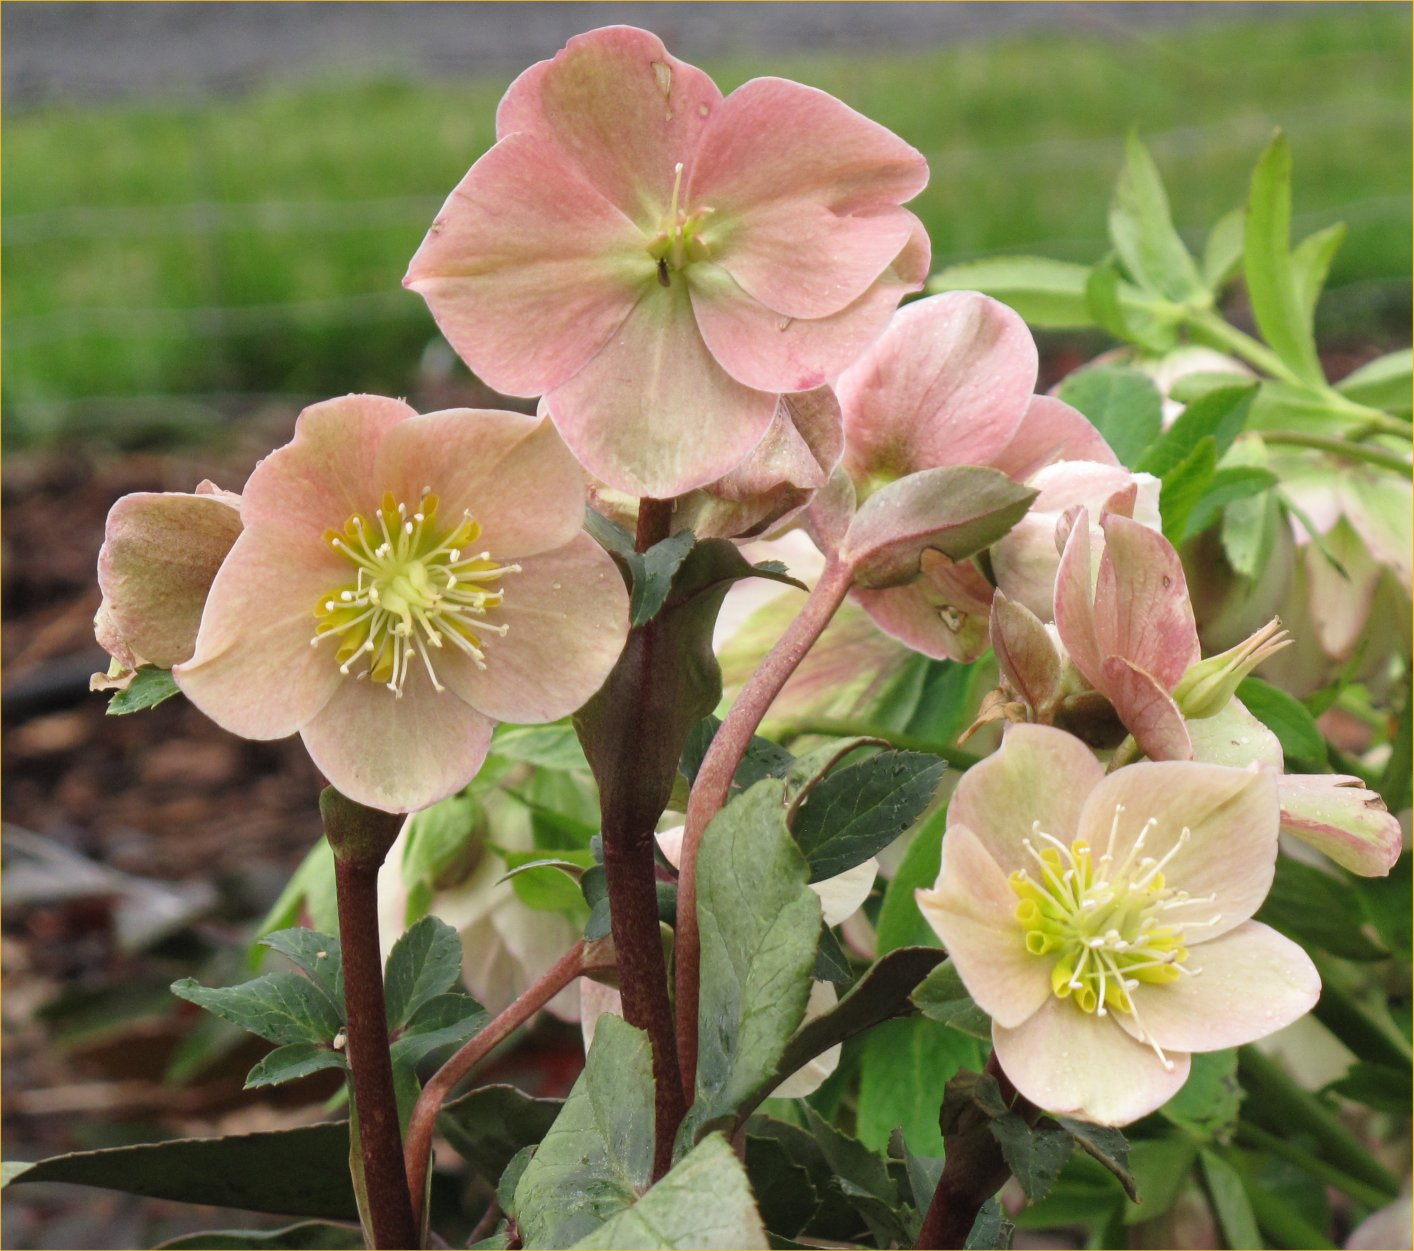 Growing Hellebores Those Lovely Harbingers Of Spring: Bloomin' News: The Beauty Of The Hellebore